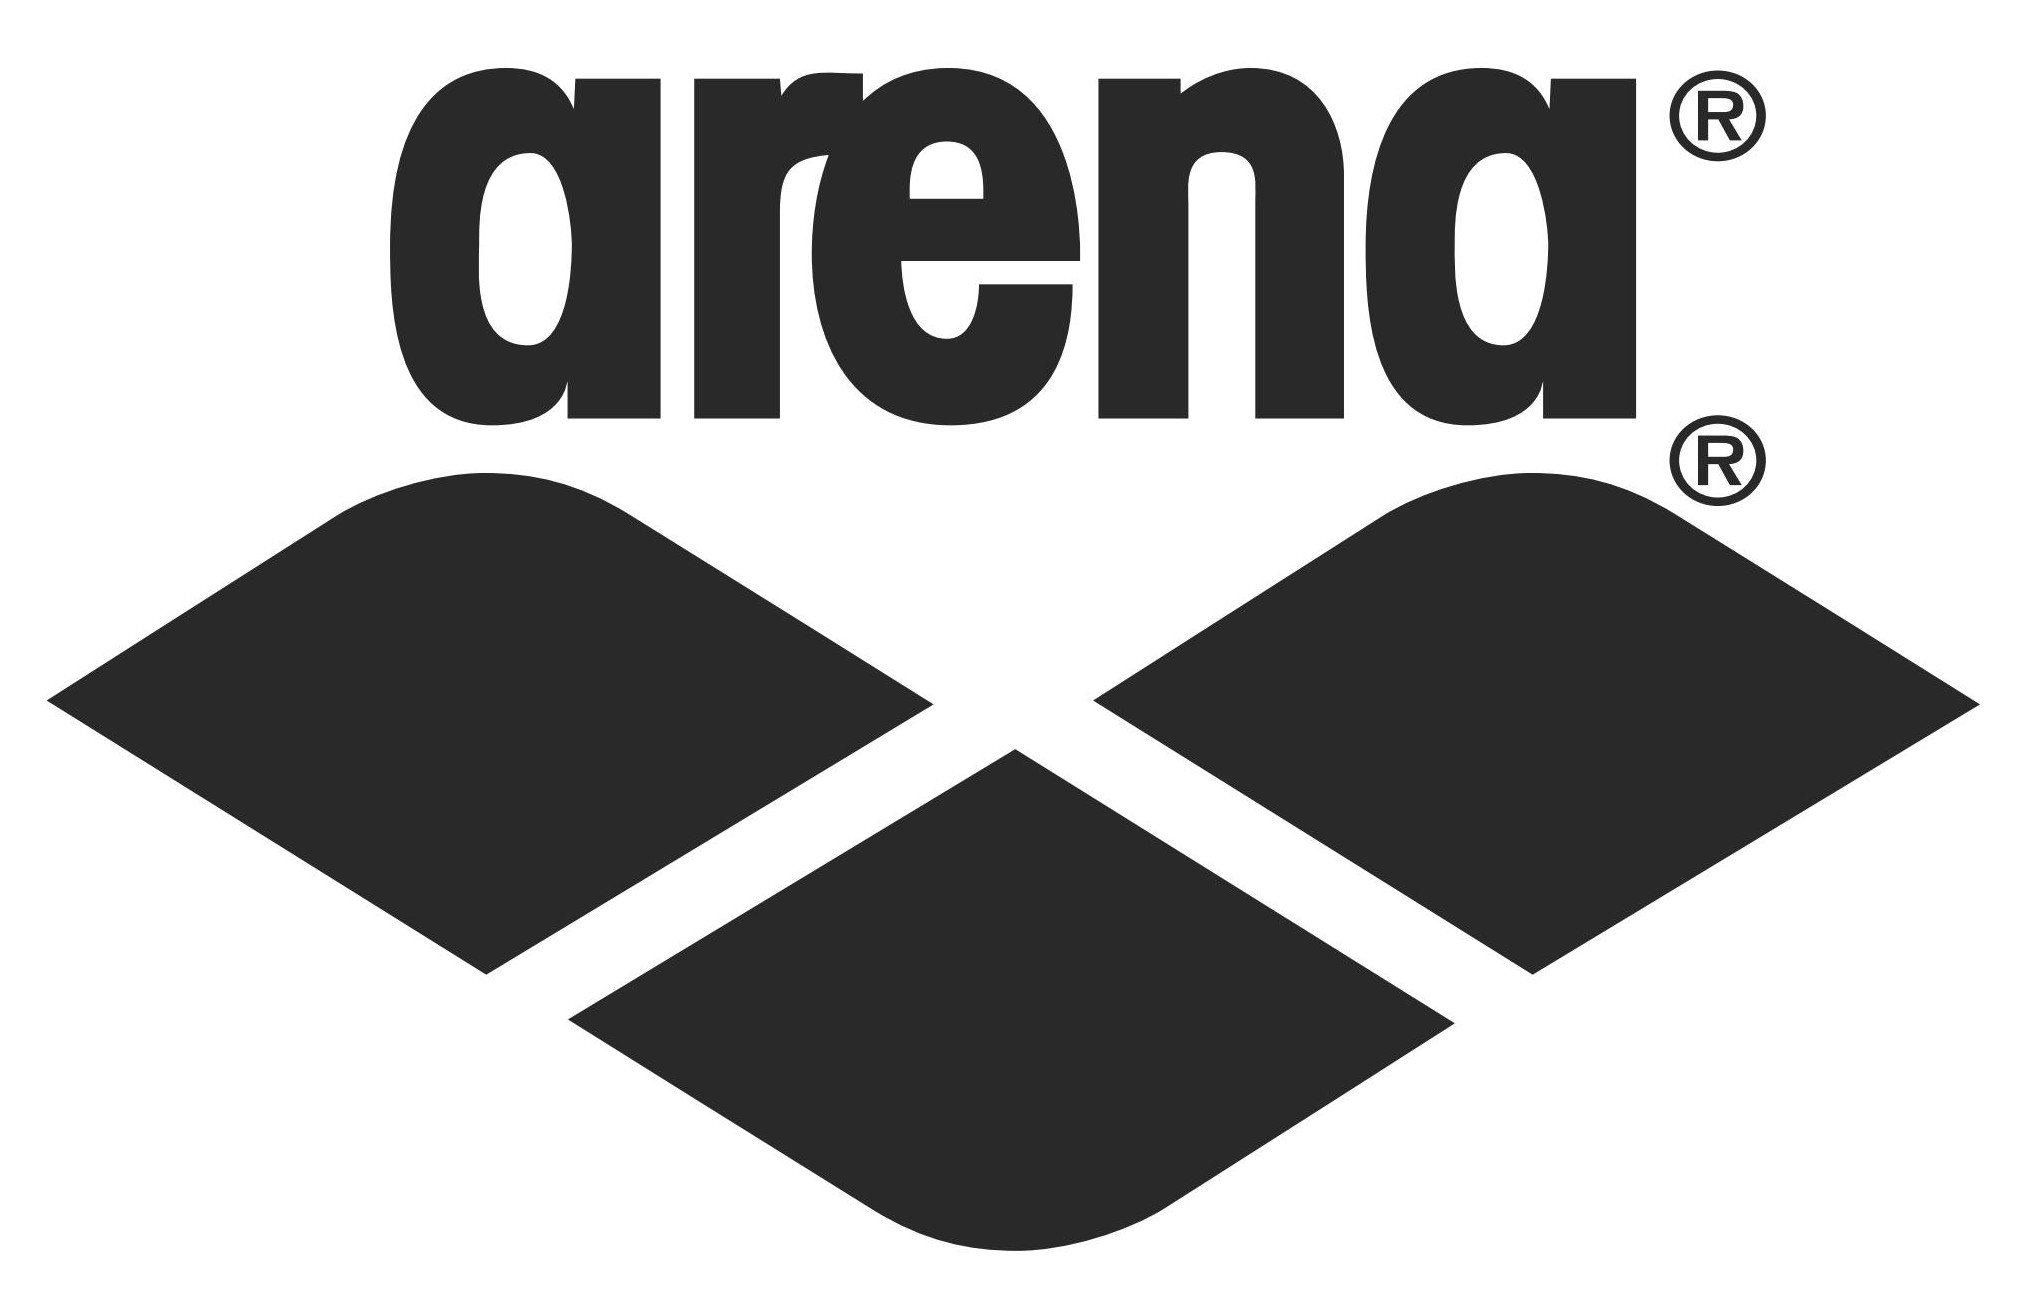 Arena Logo [EPS File] Vector EPS Free Download, Logo, Icons, Brand Emblems